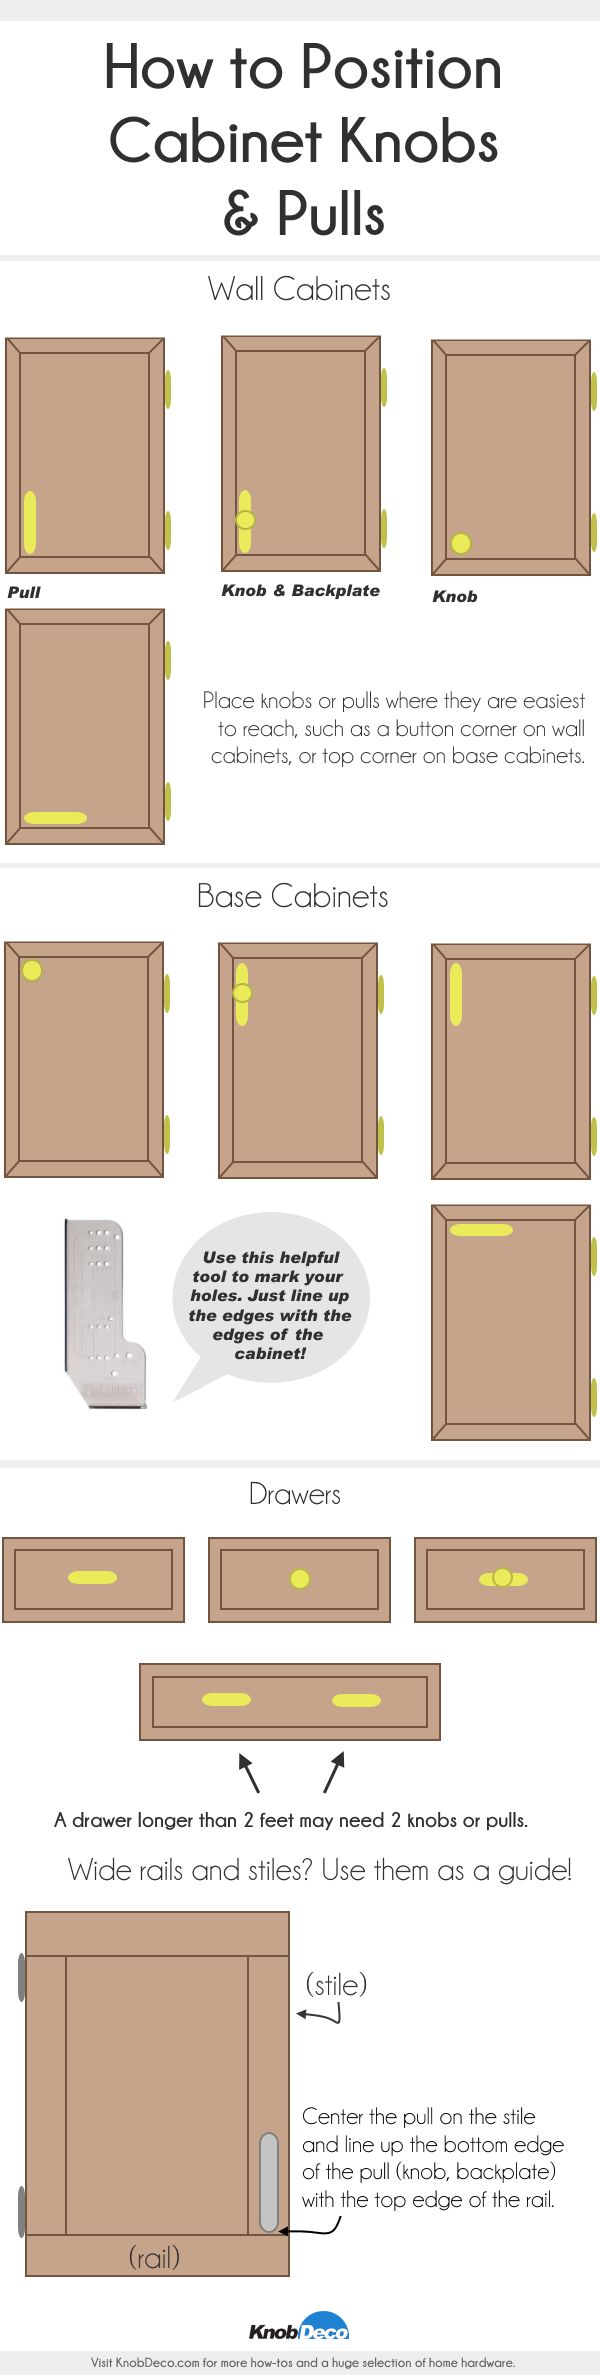 how to position and drill cabinet hardware lots of info on drilling and placement via knob deco